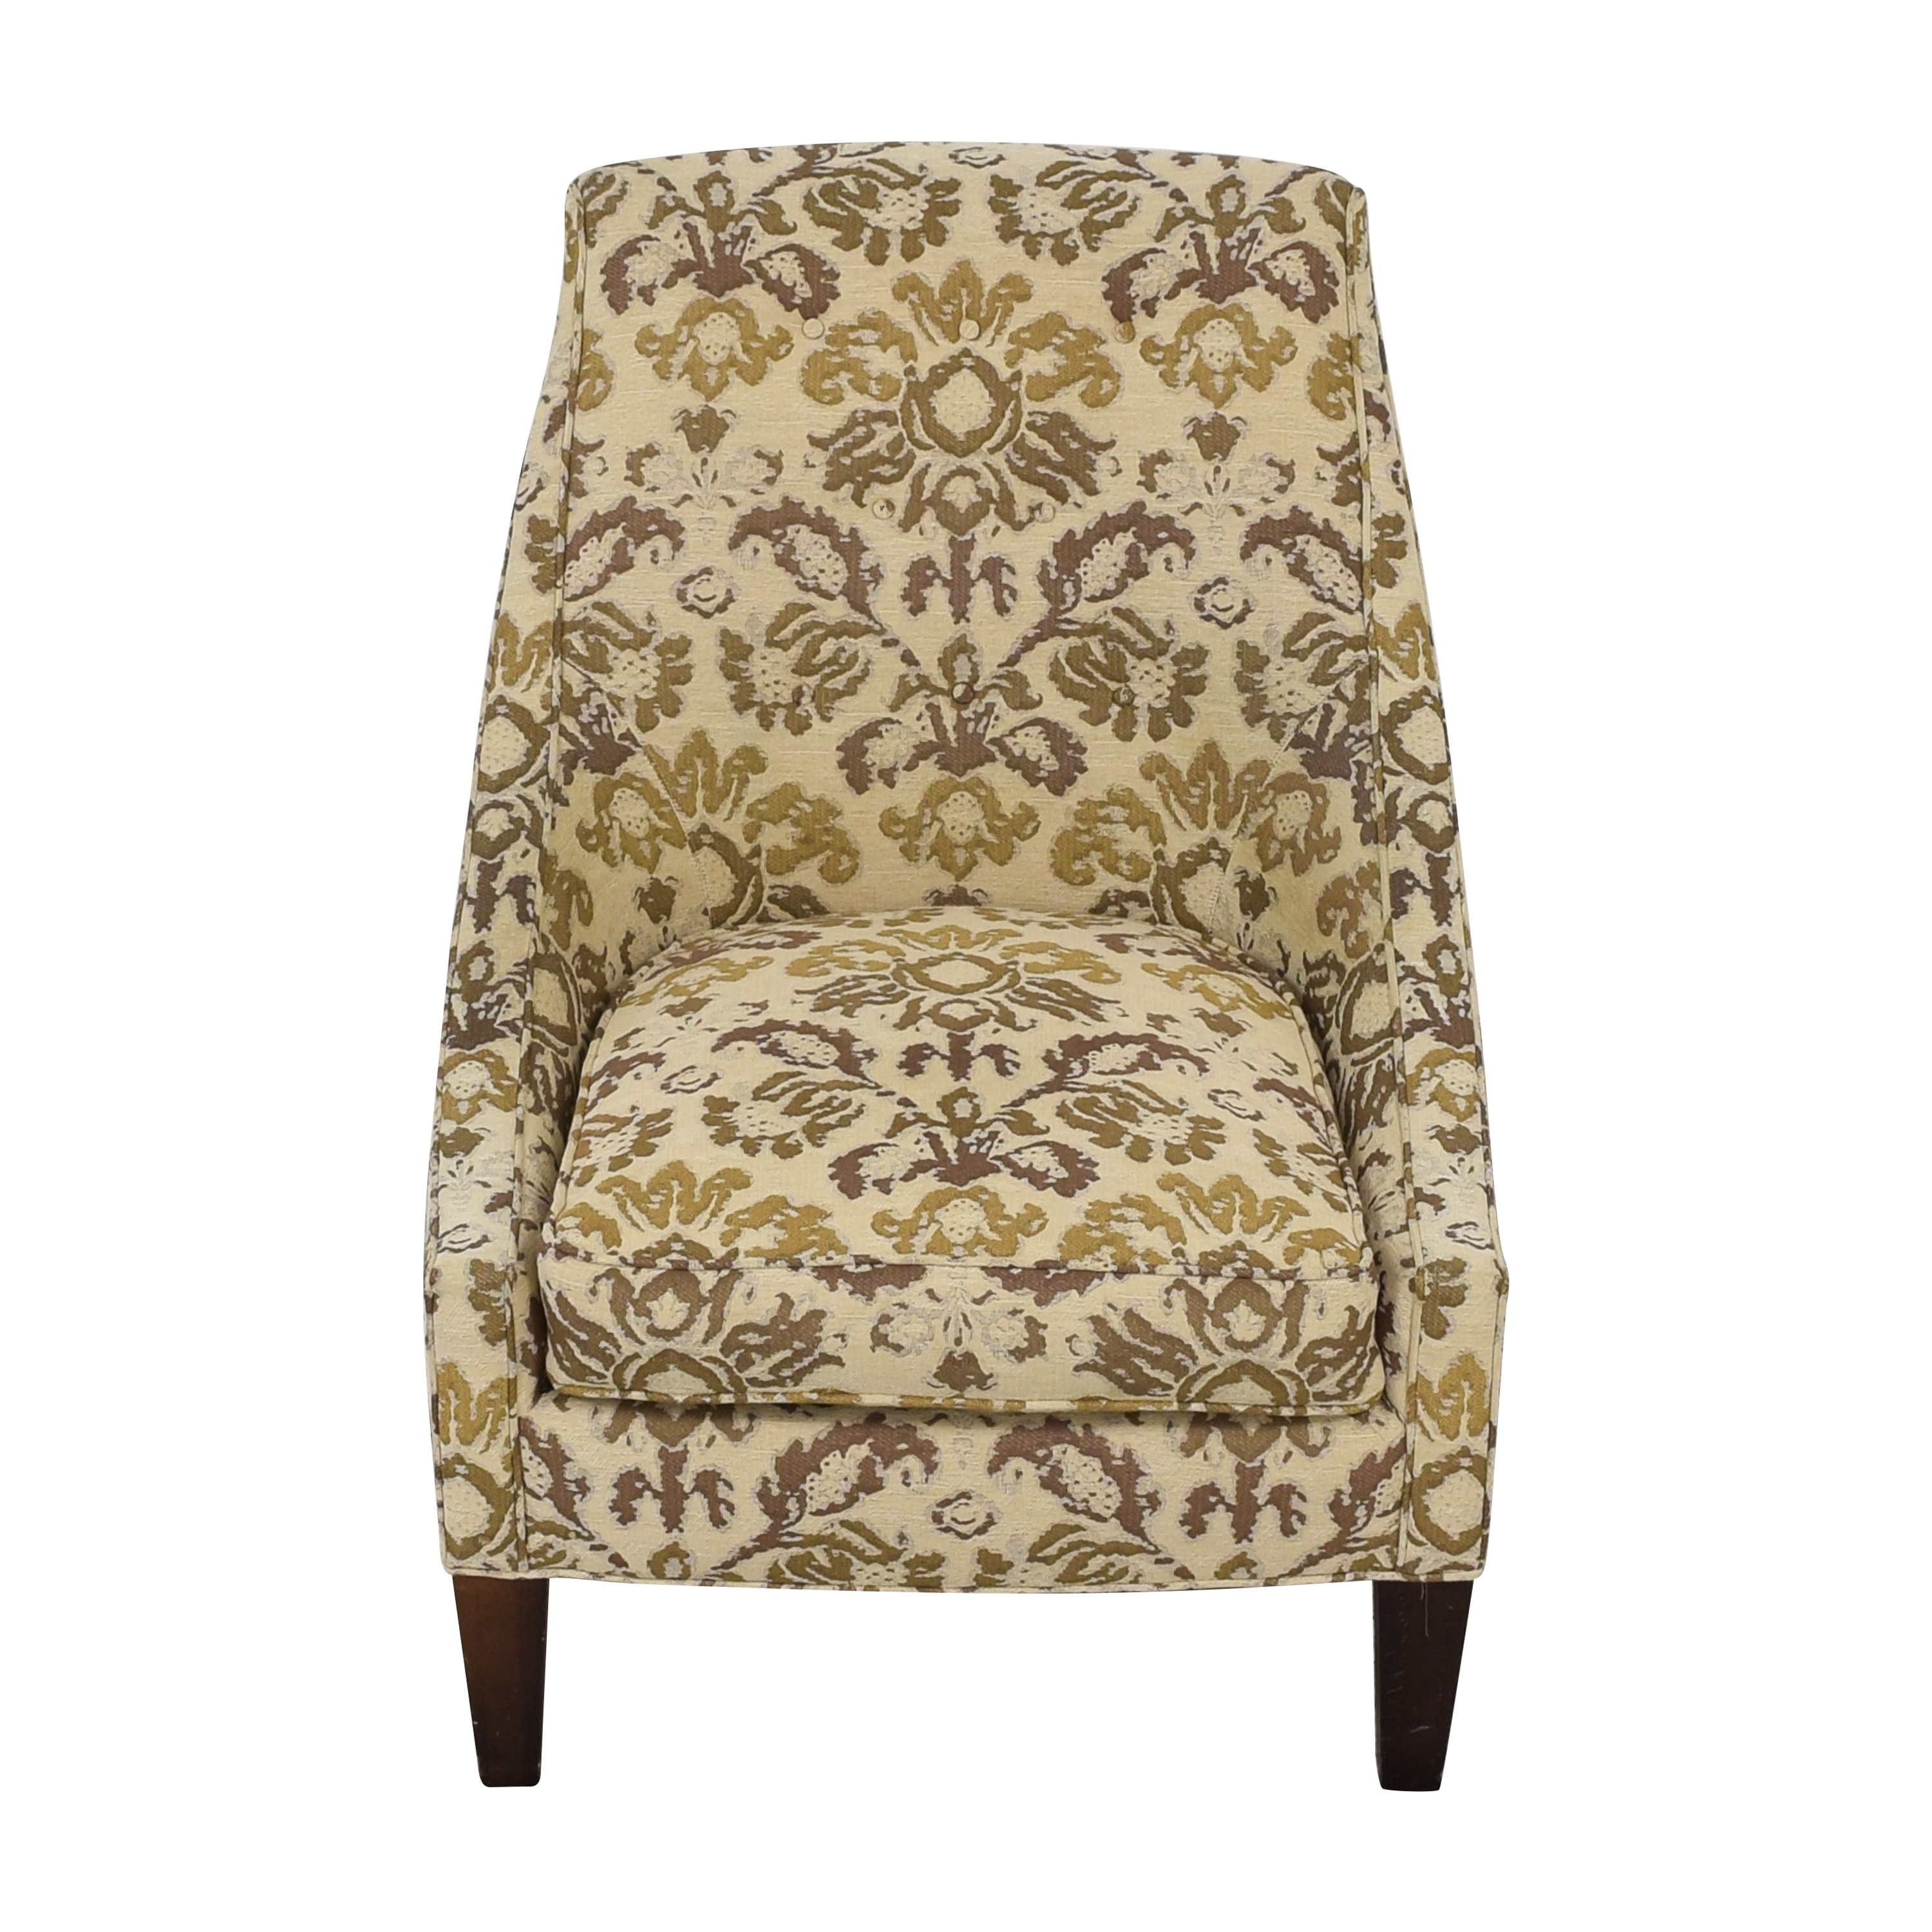 Williams Sonoma Williams Sonoma Upholstered Accent Chair